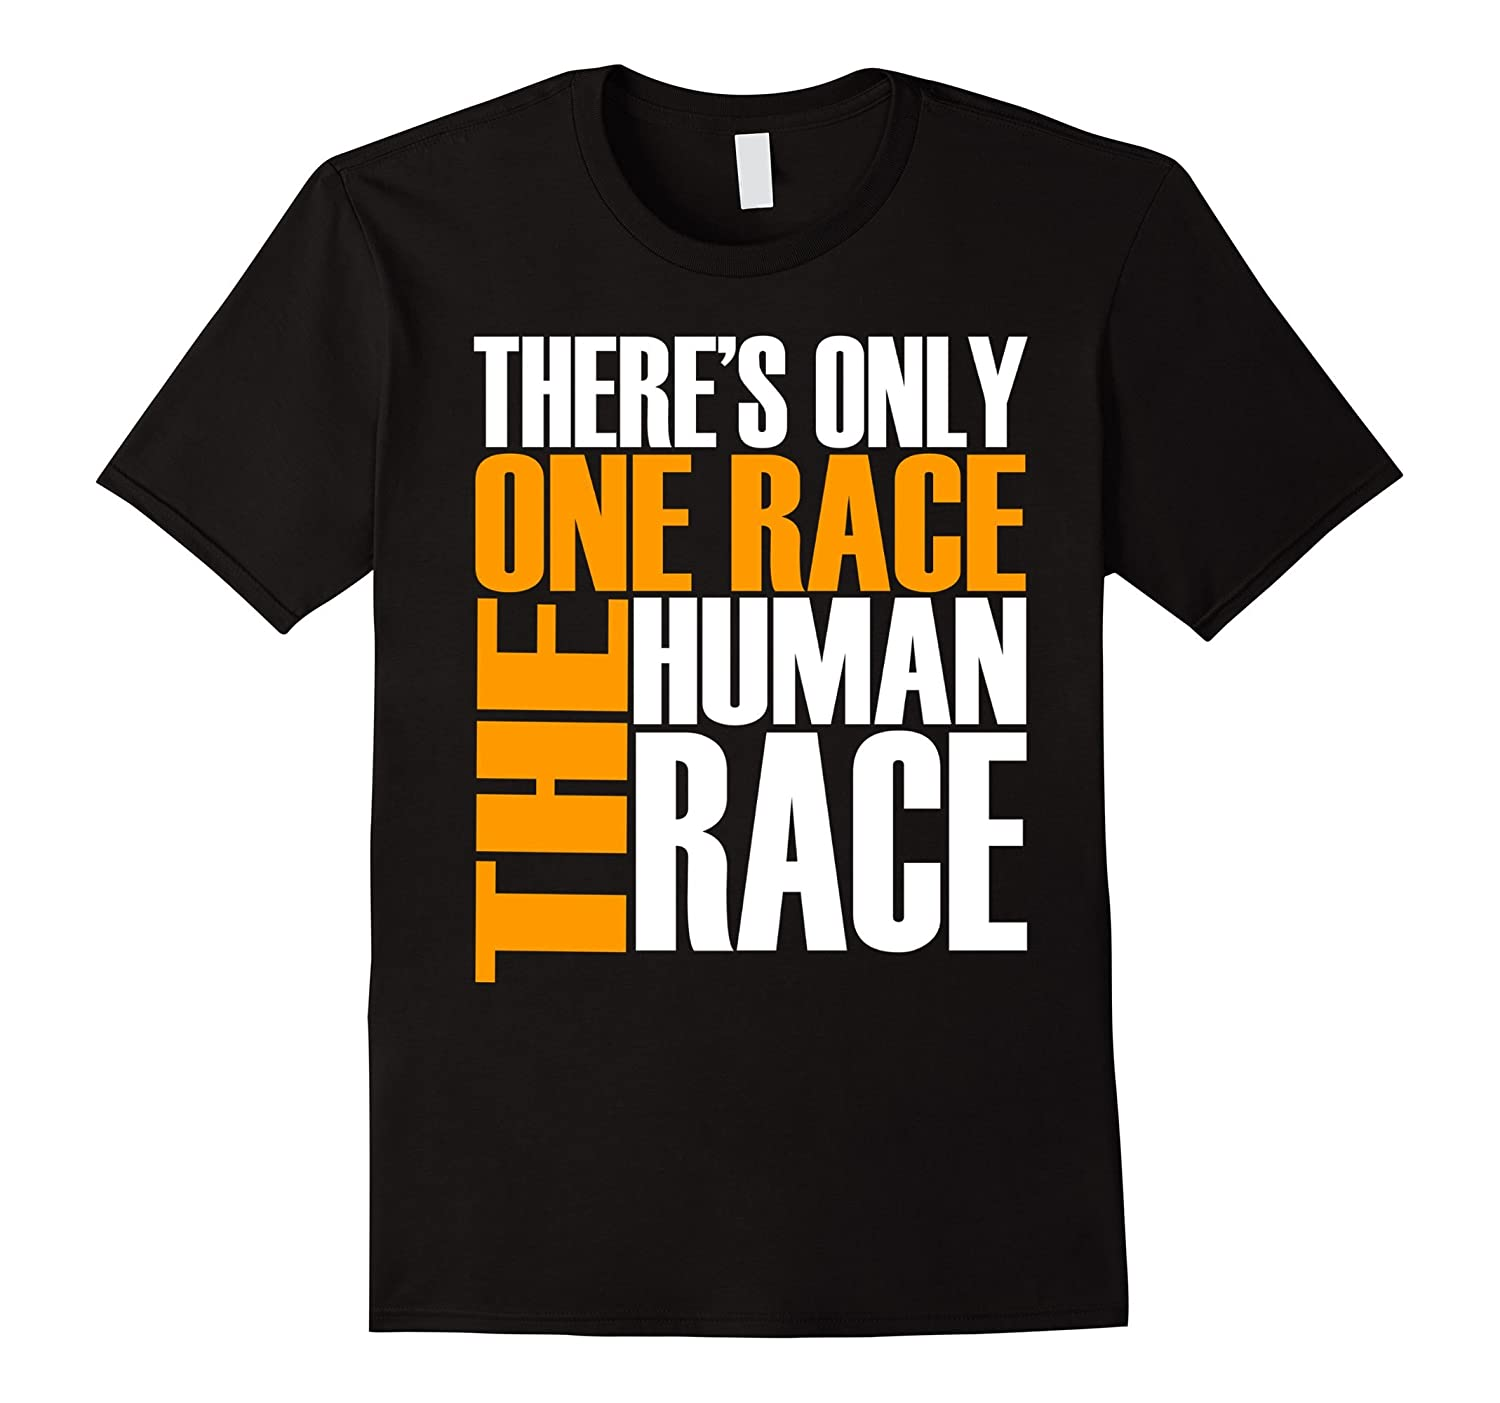 Only dating one race